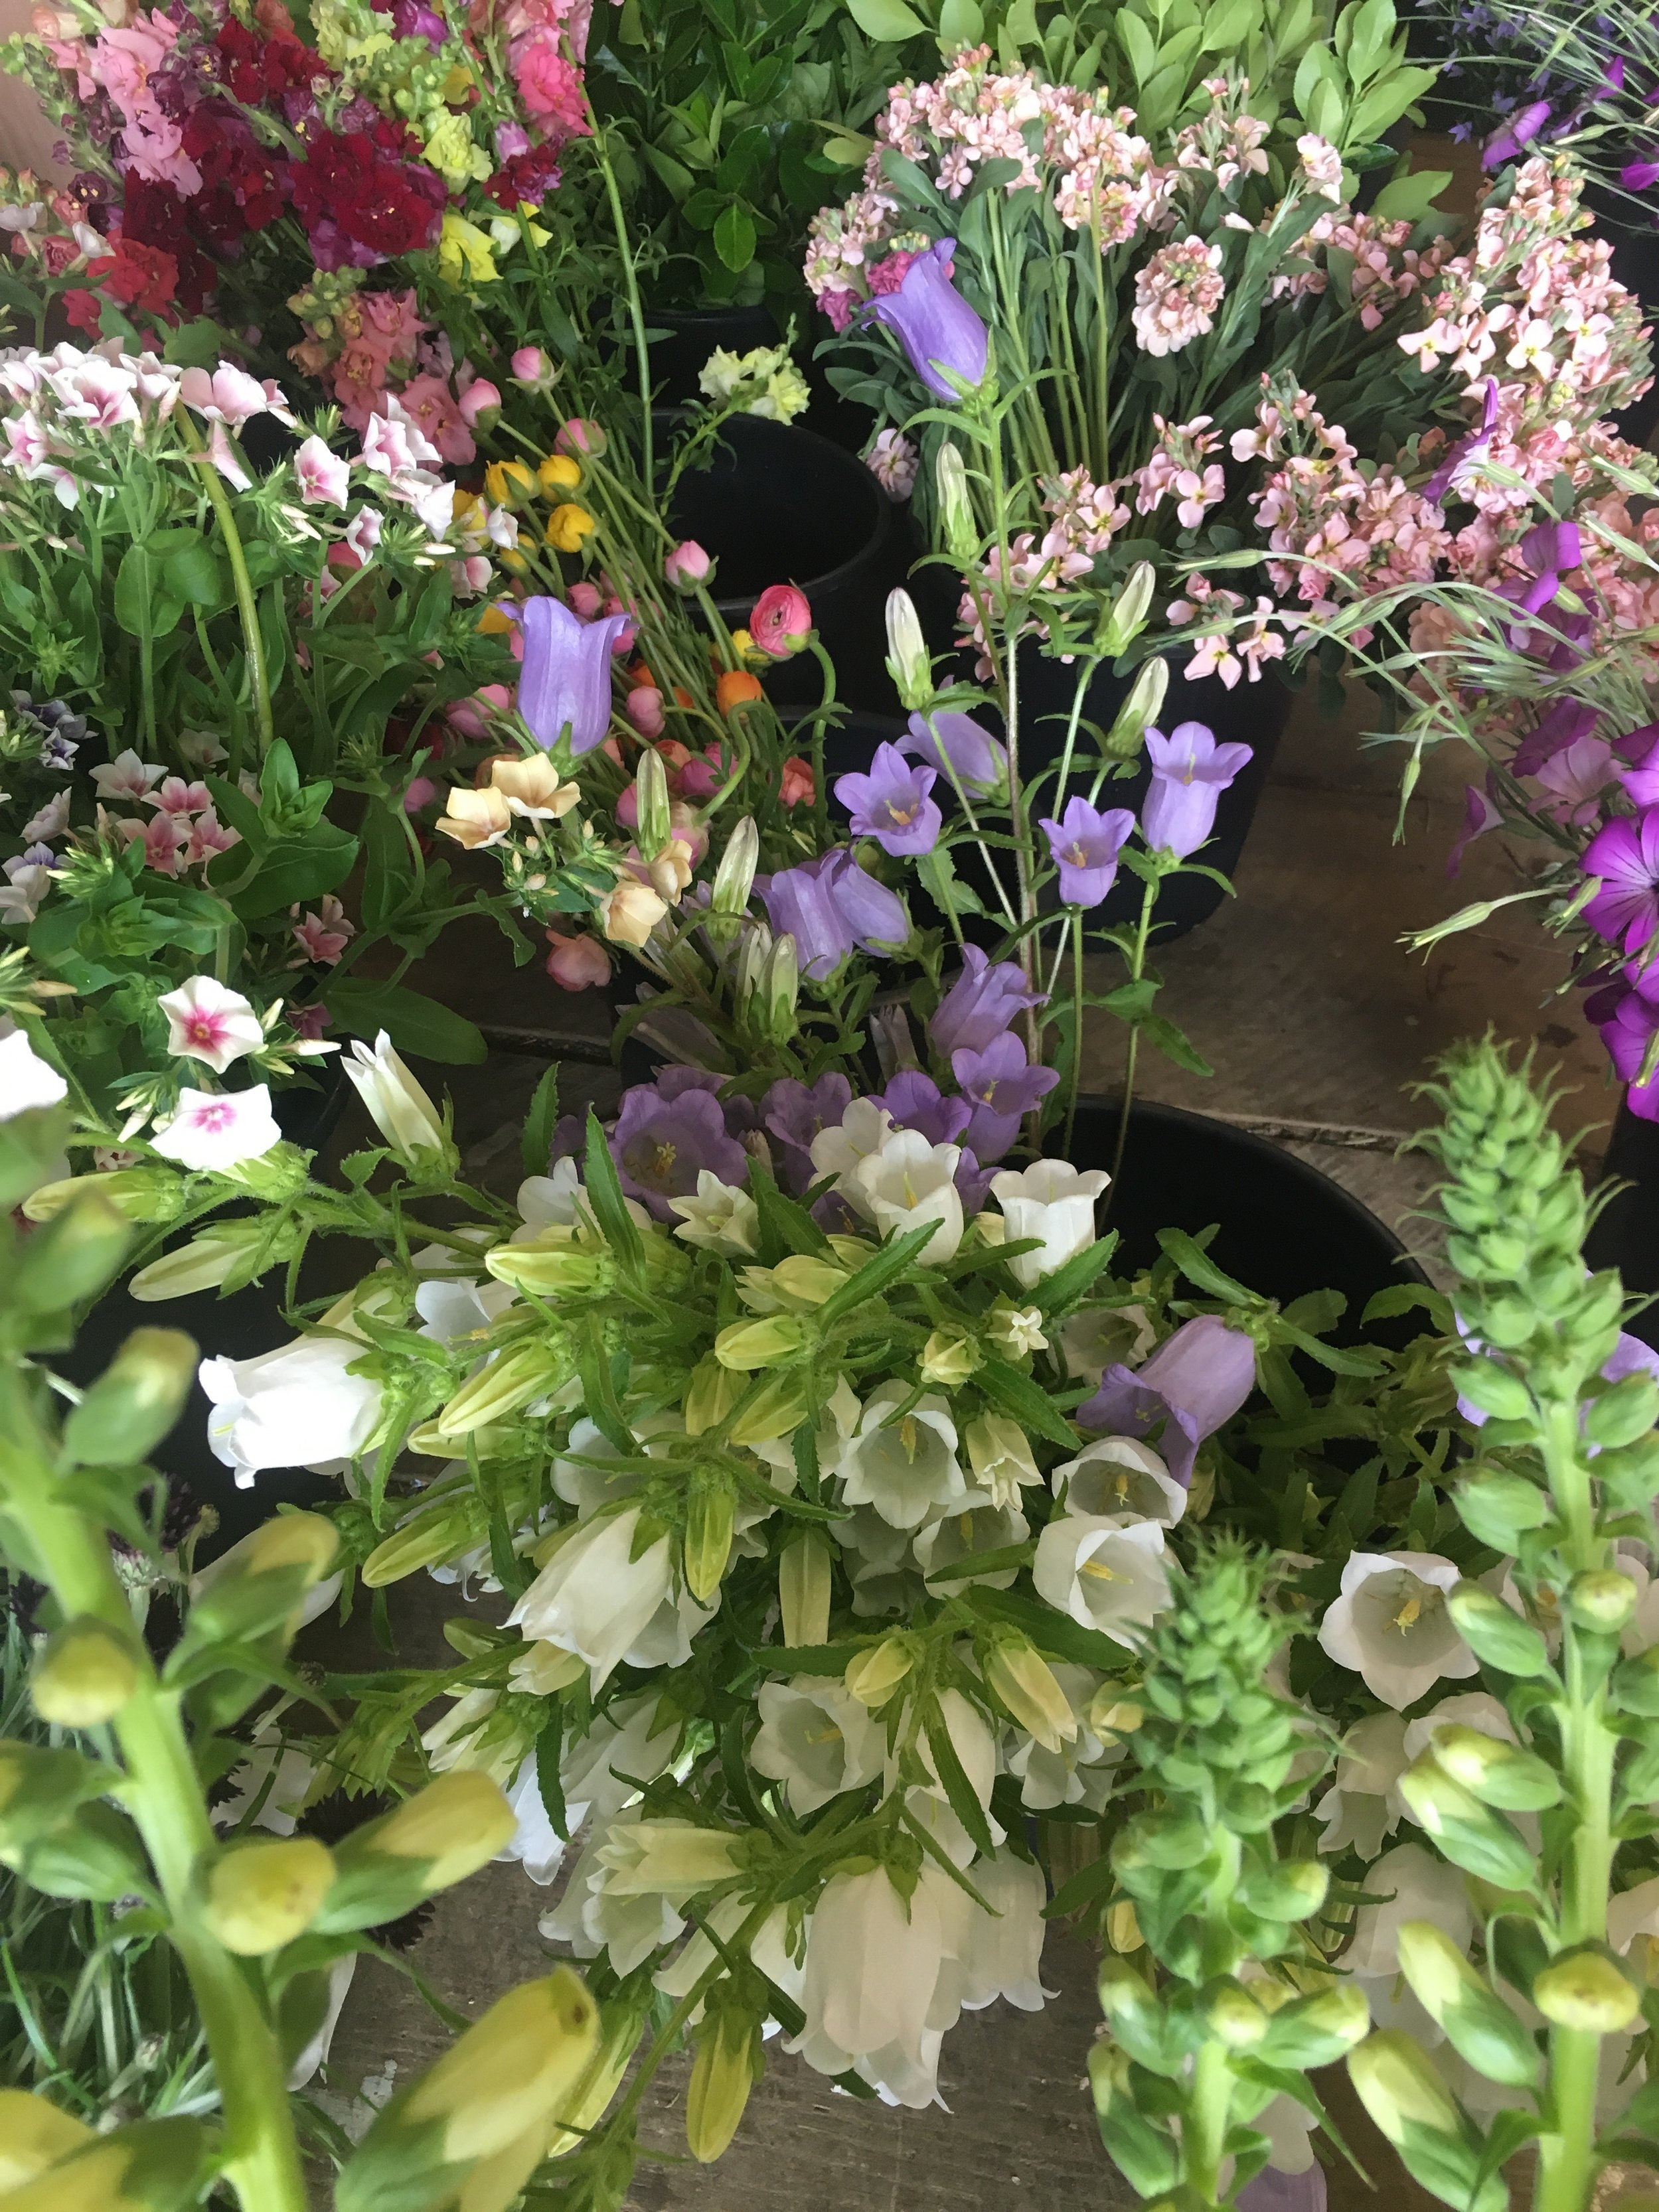 Just a few of the stunning flowers harvested on Wednesday morning.